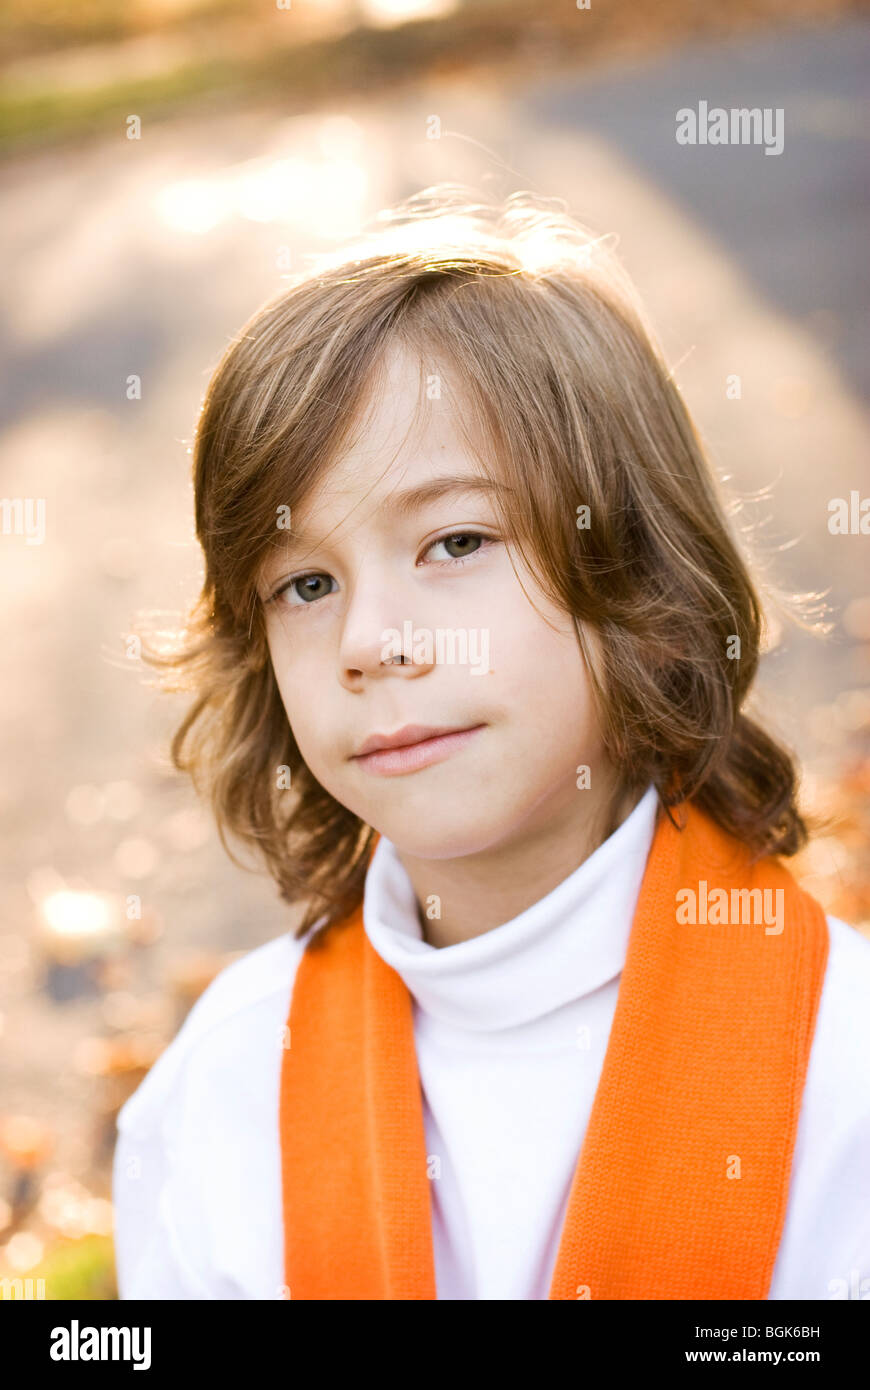 head and shoulders photo of boy - Stock Image